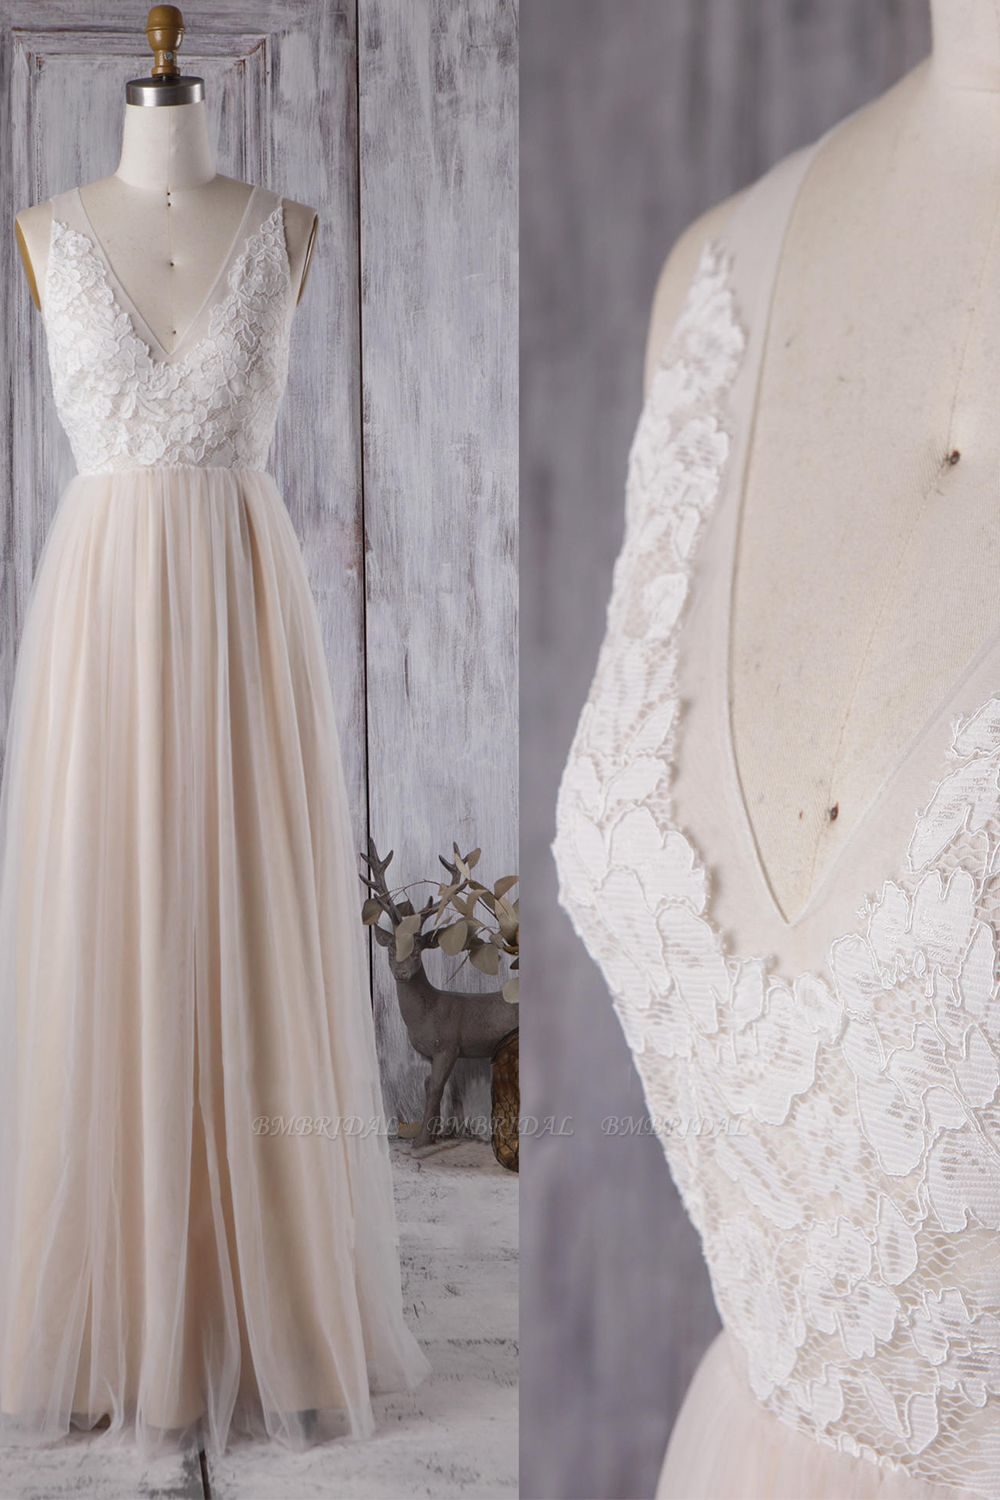 BMbridal Elegant A-line Tulle Lace Wedding Dress V-neck Appliques Ruffles Bridal Gowns On Sale